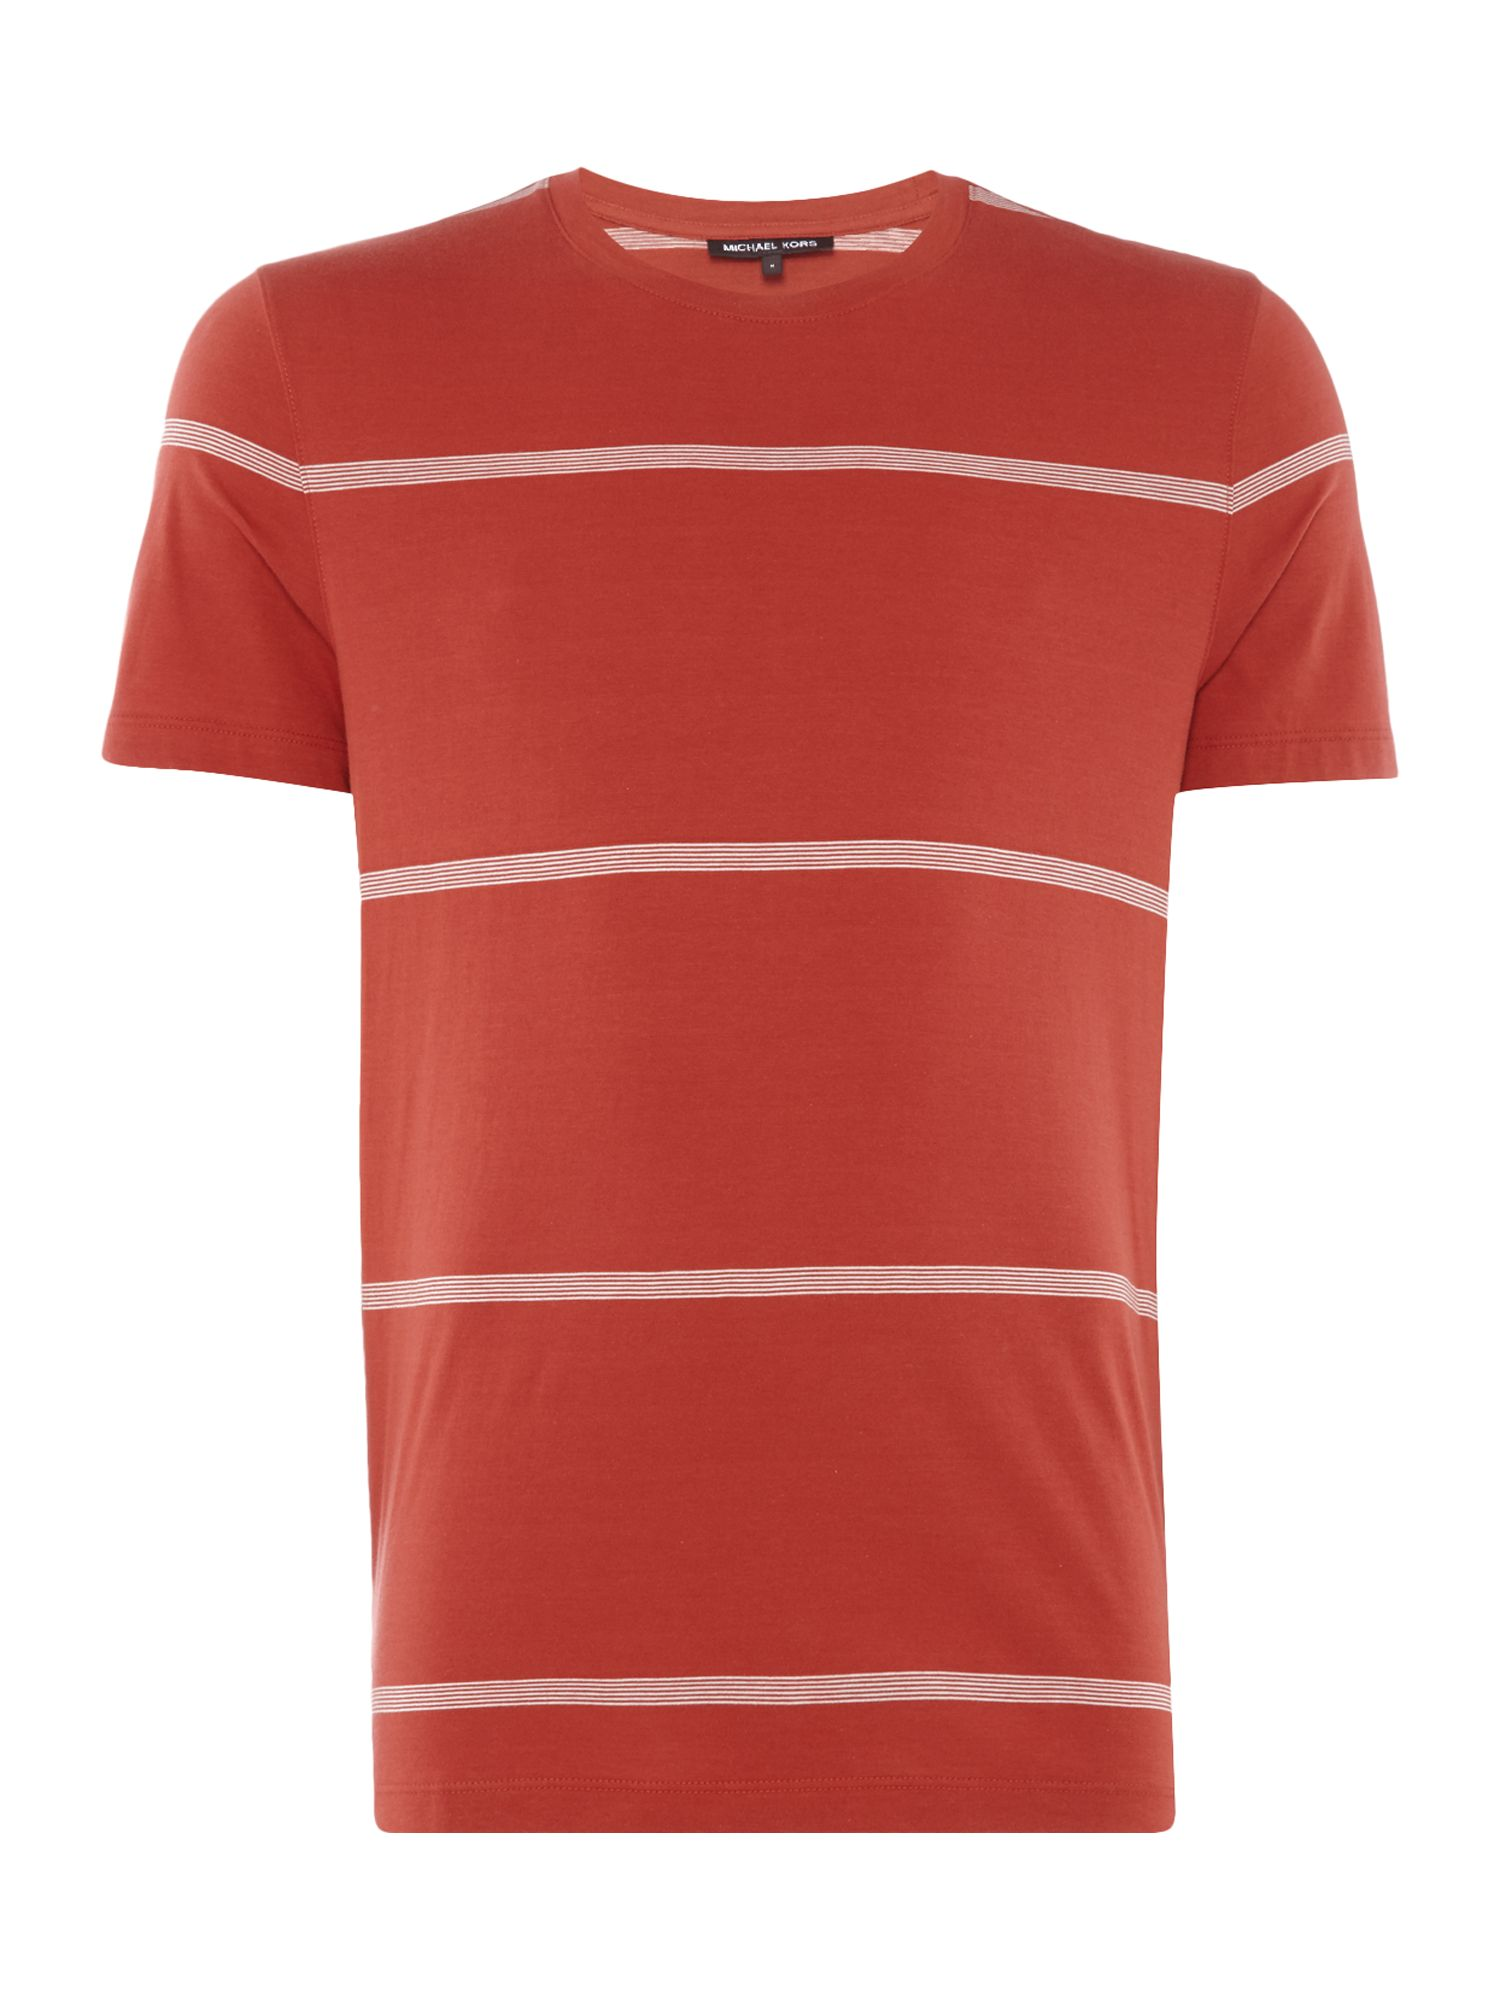 Men's Michael Kors Nautical Striped Crew Neck T-Shirt, Baked Red